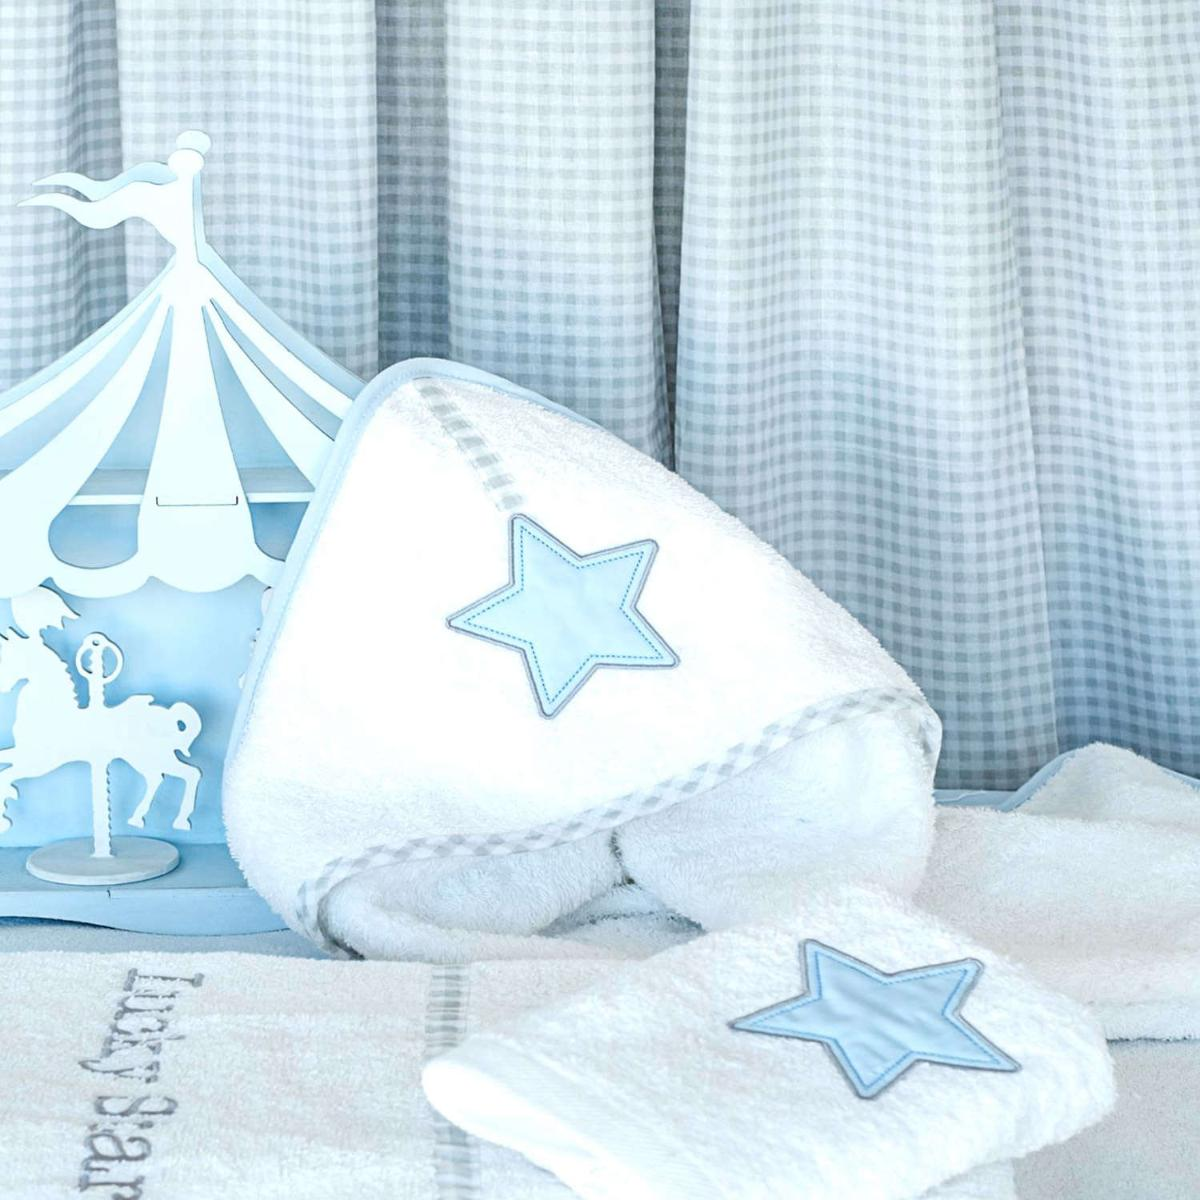 Κάπα Βρεφική Des. 309 Lucky Star White-Blue Baby Oliver One Size 100% Βαμβάκι